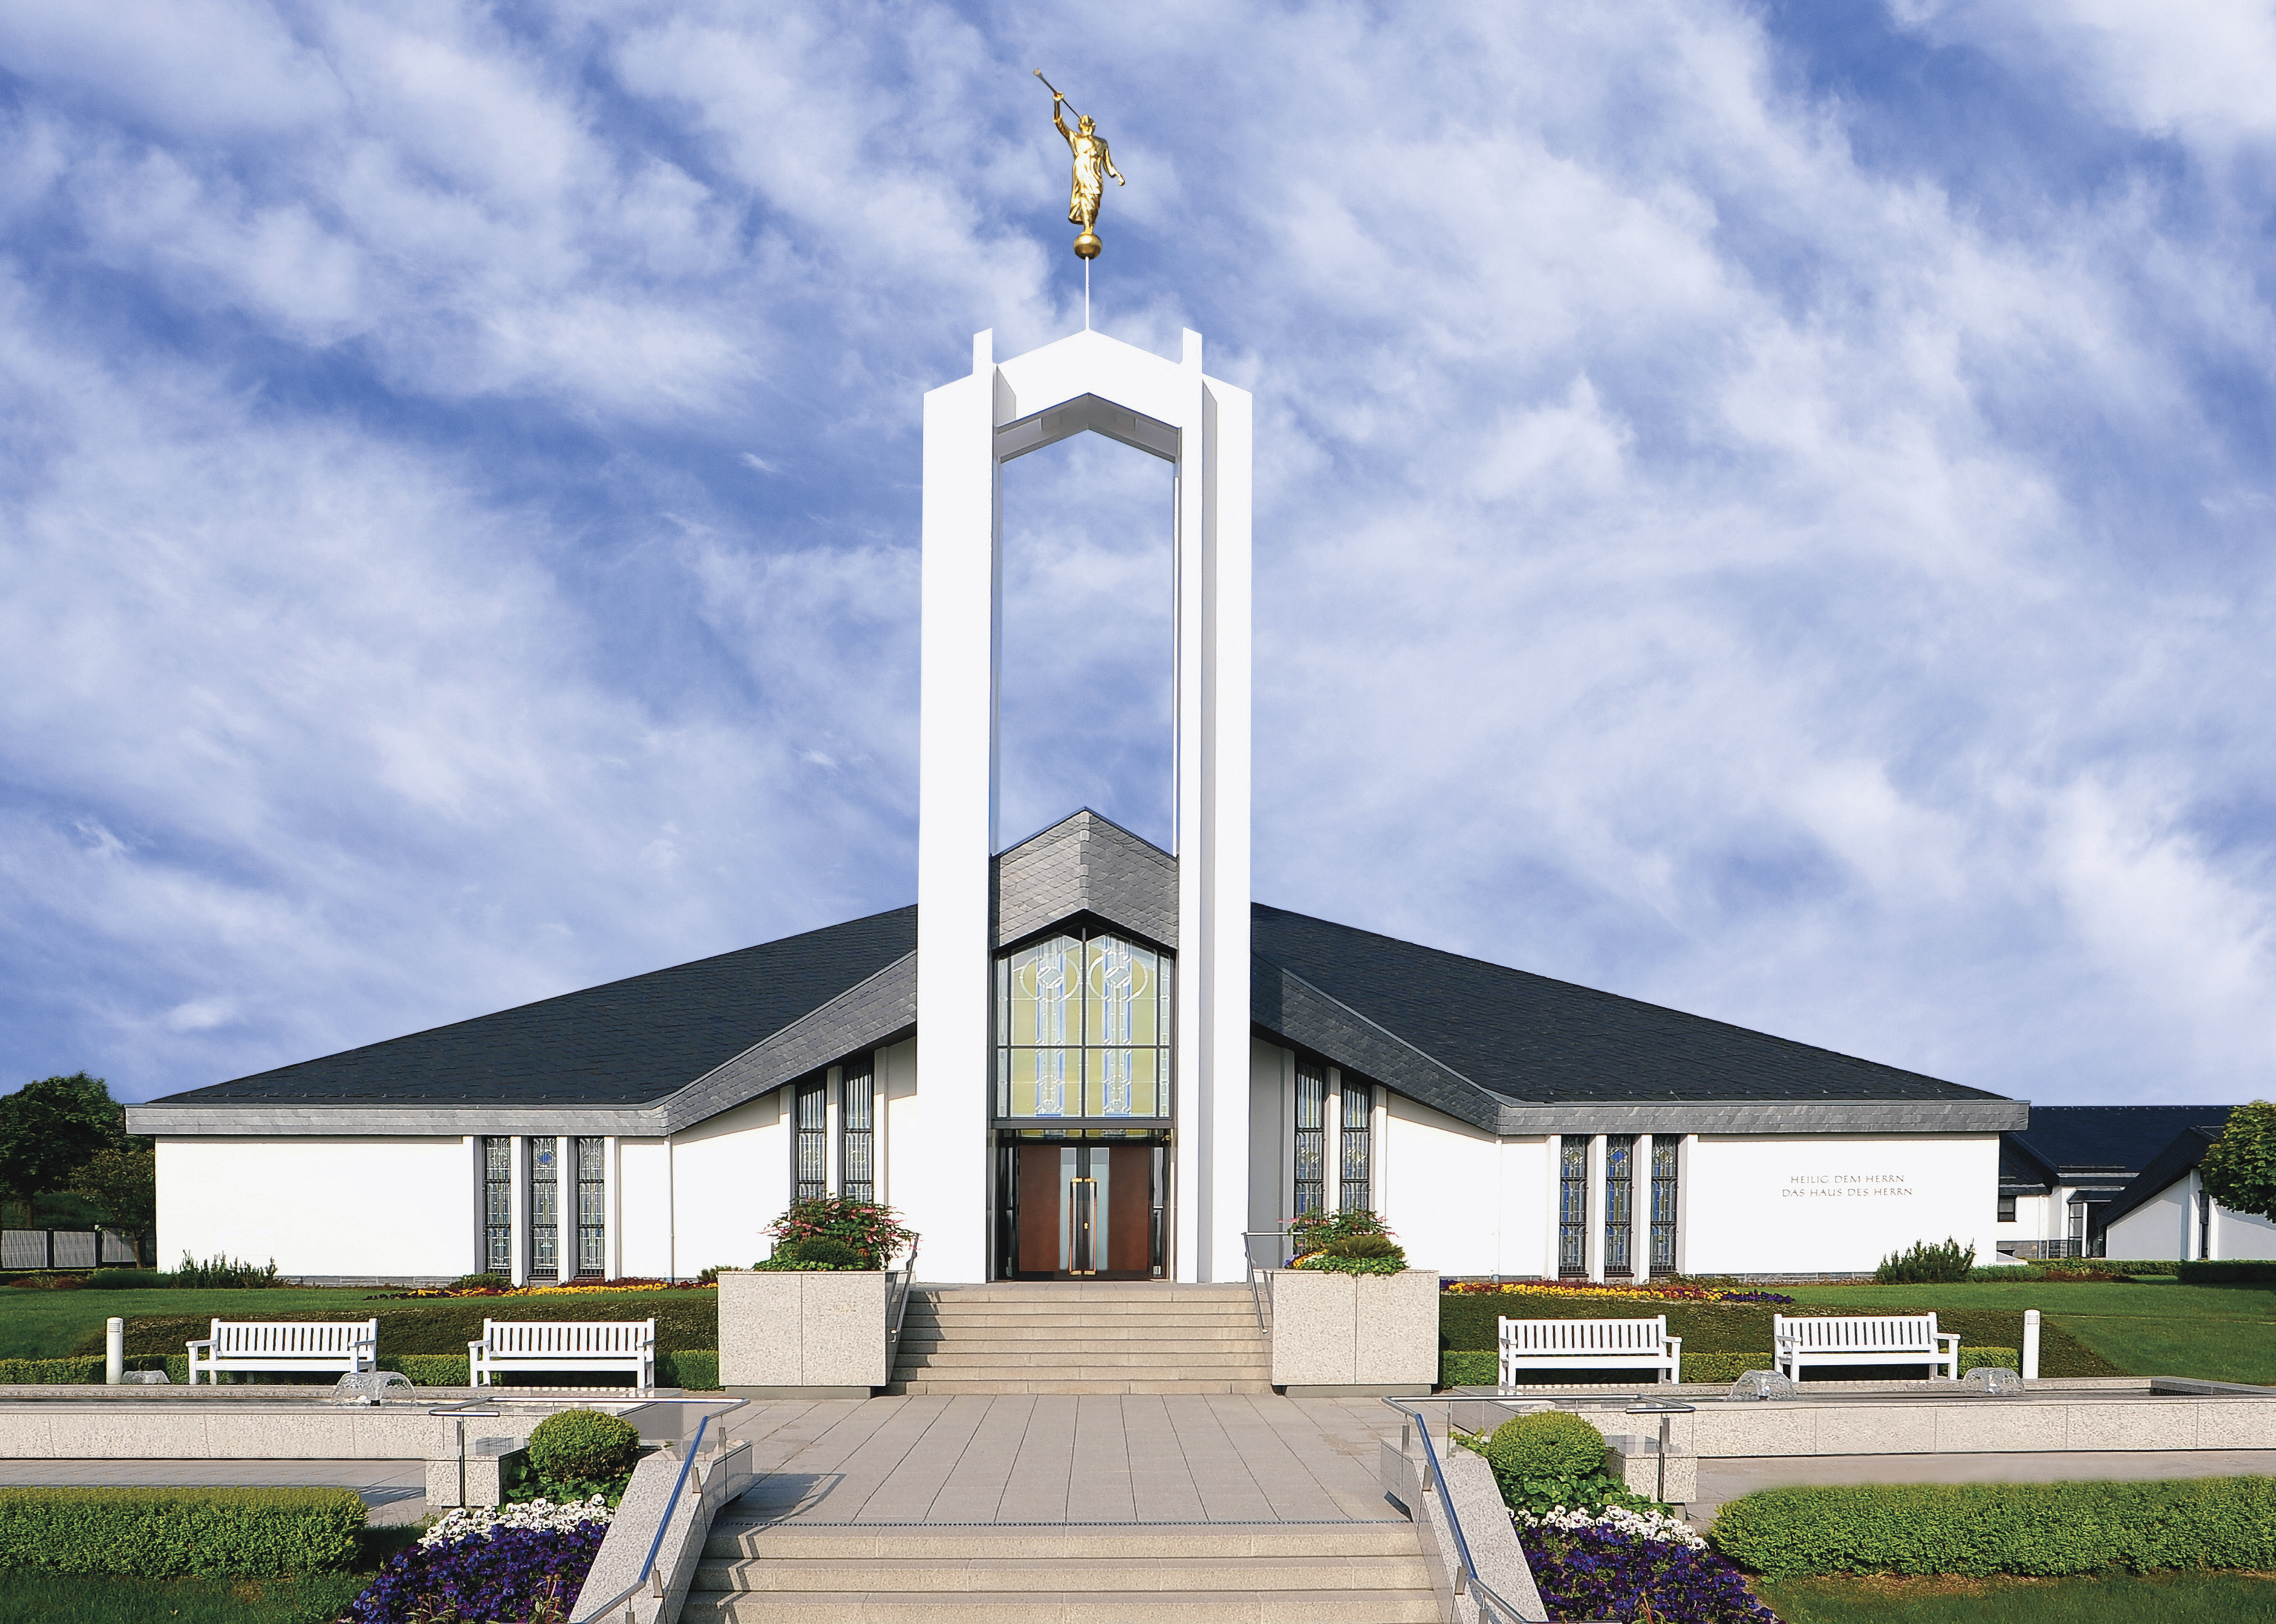 An exterior view of the front of the Freiberg Germany Temple.